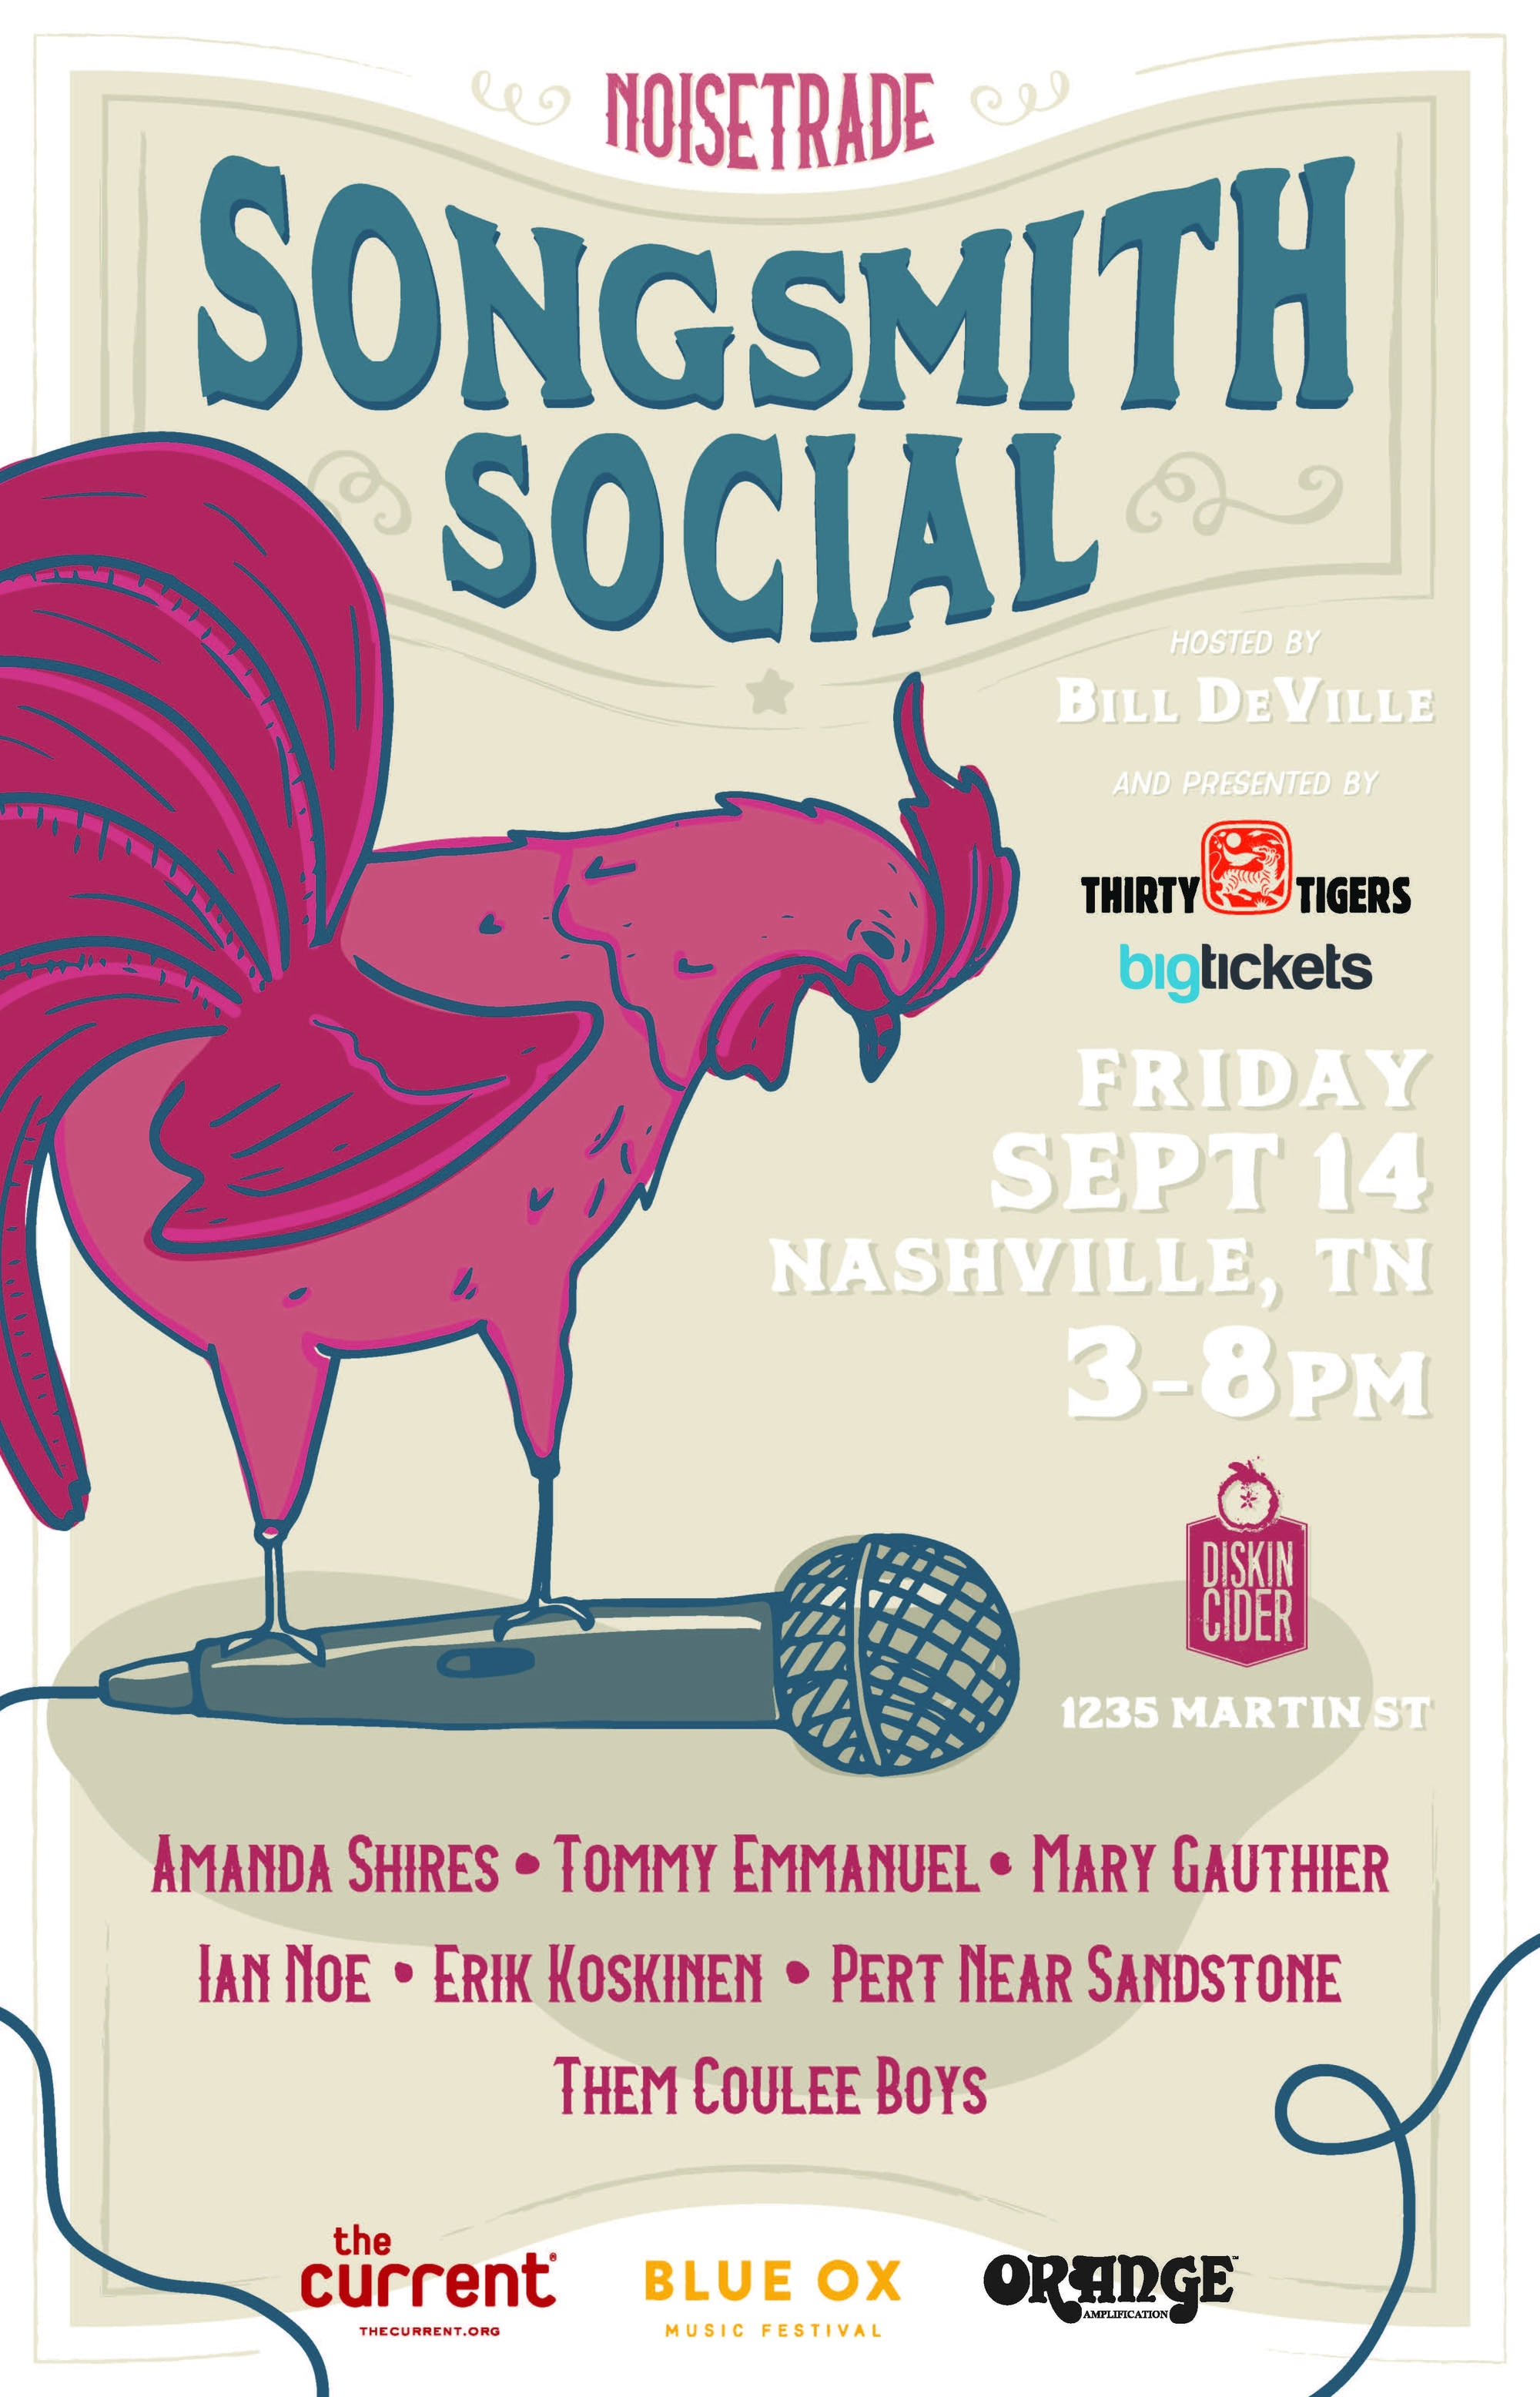 Songsmith Social in Nashville